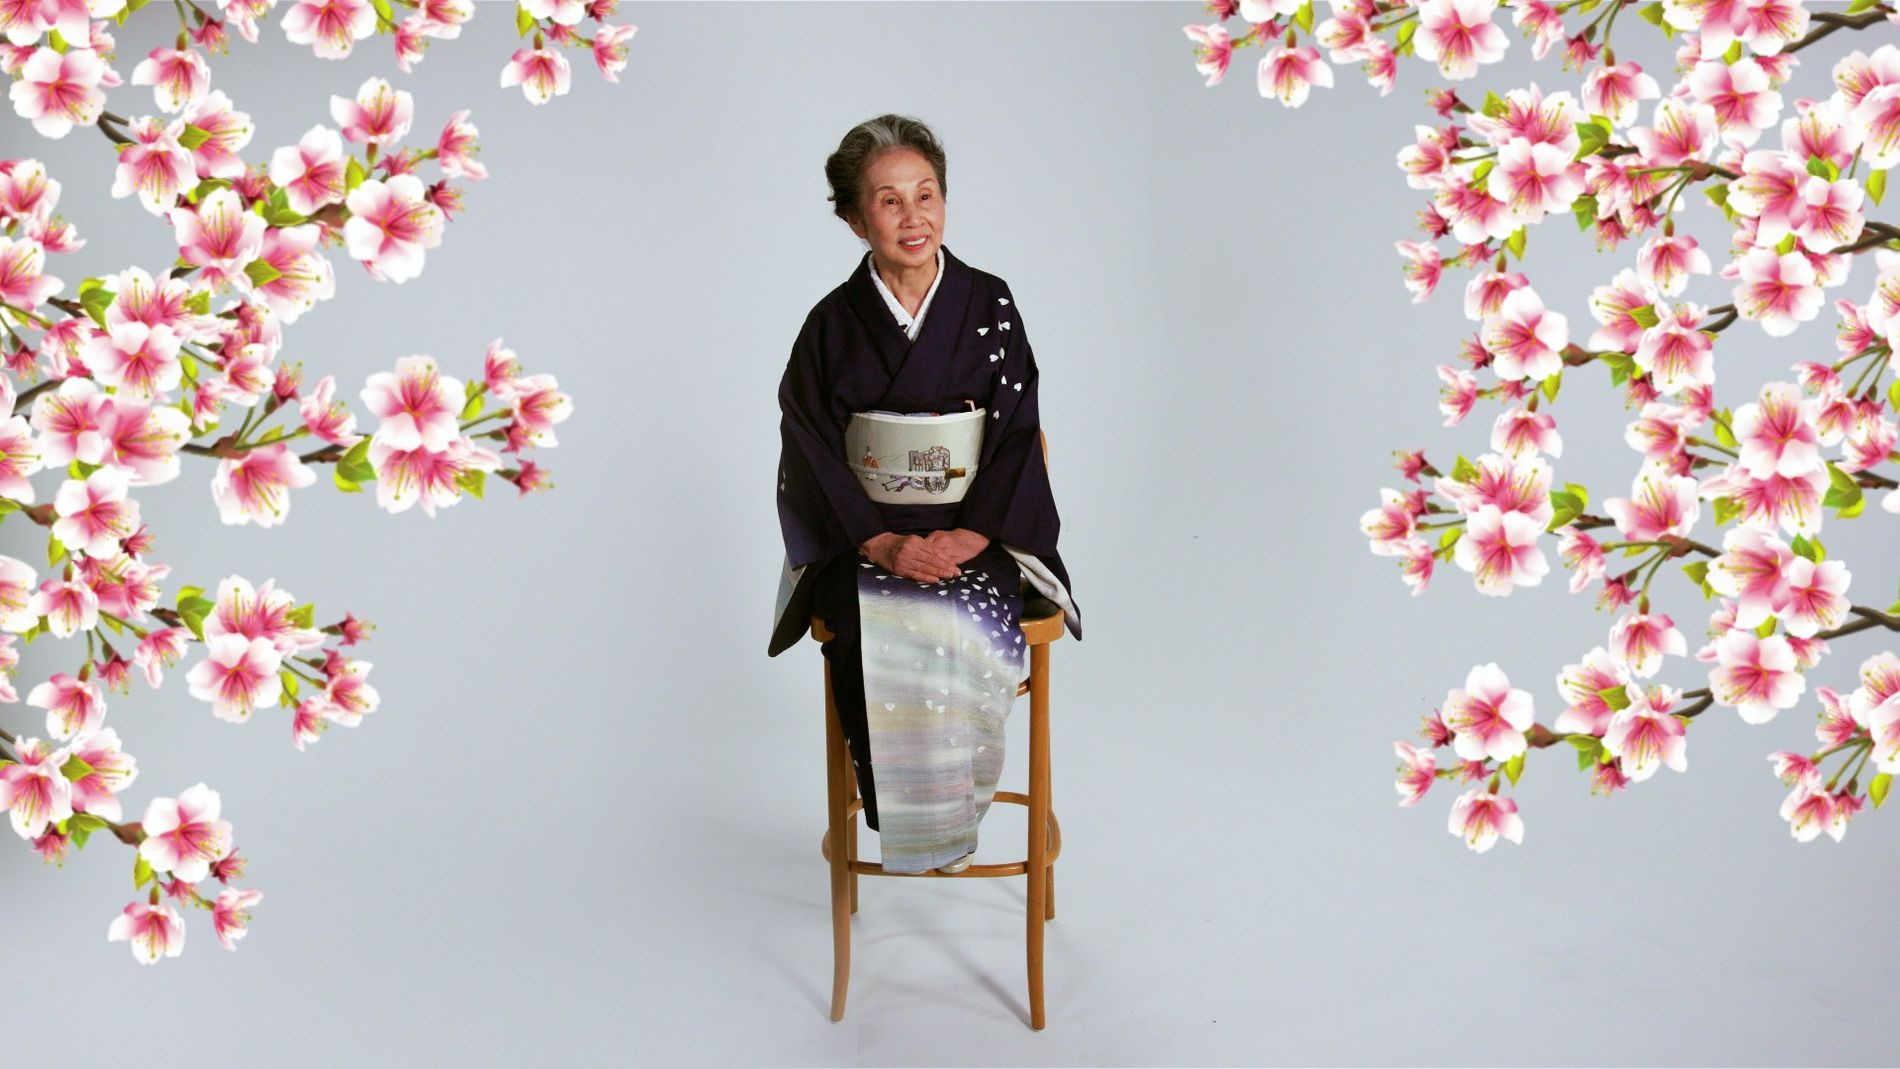 This Japanese Tea Master Has Been Hosting Ceremonies for Decades